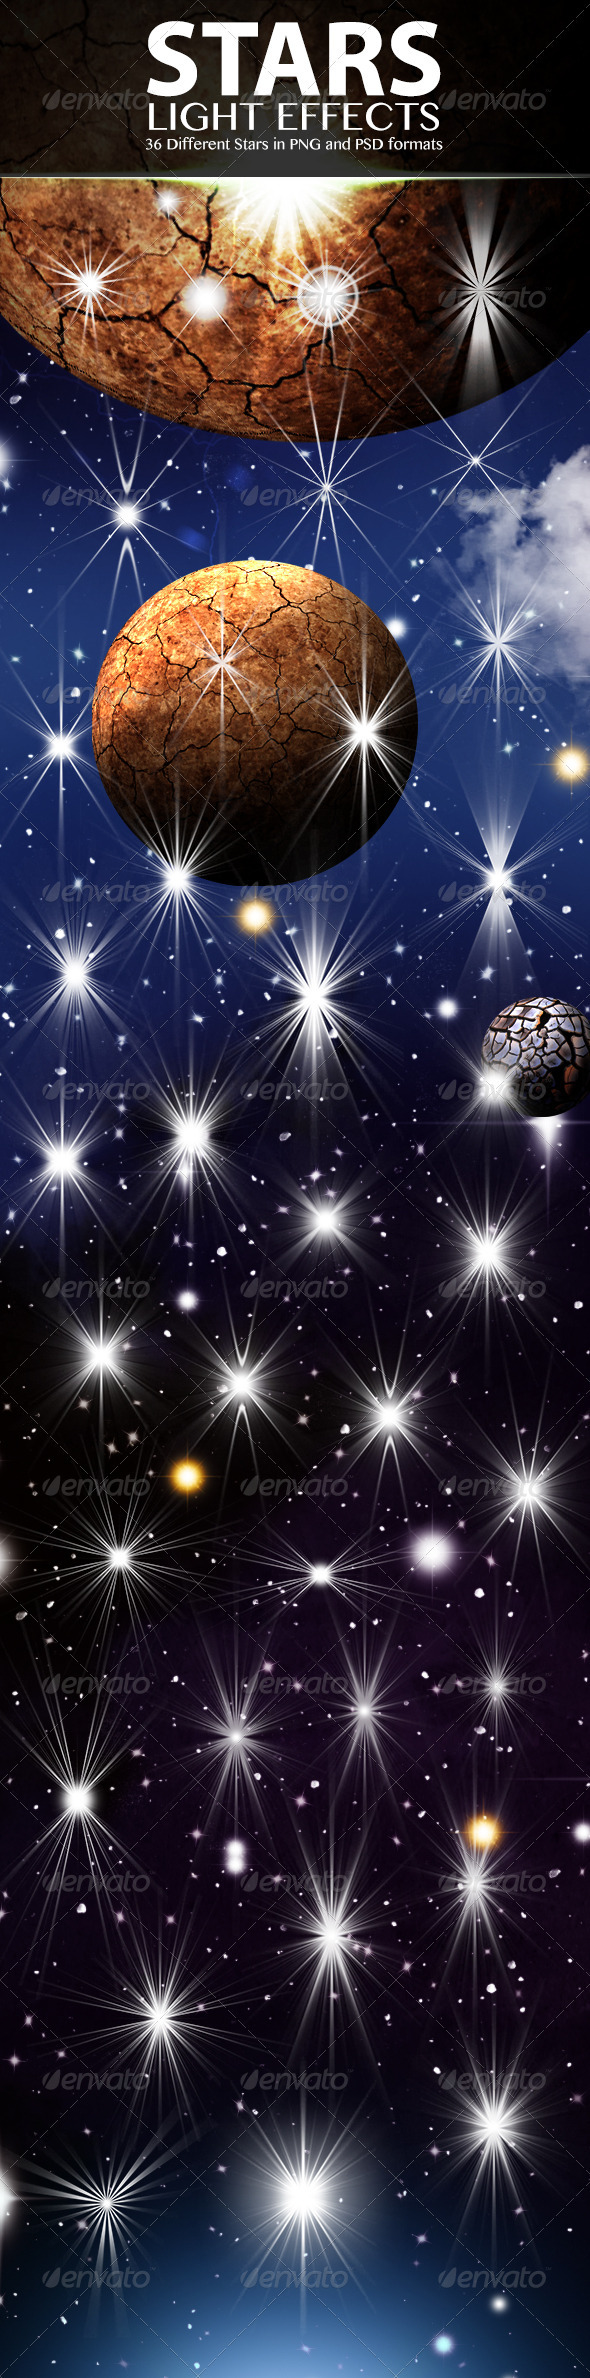 Stars Light Effects - Decorative Graphics